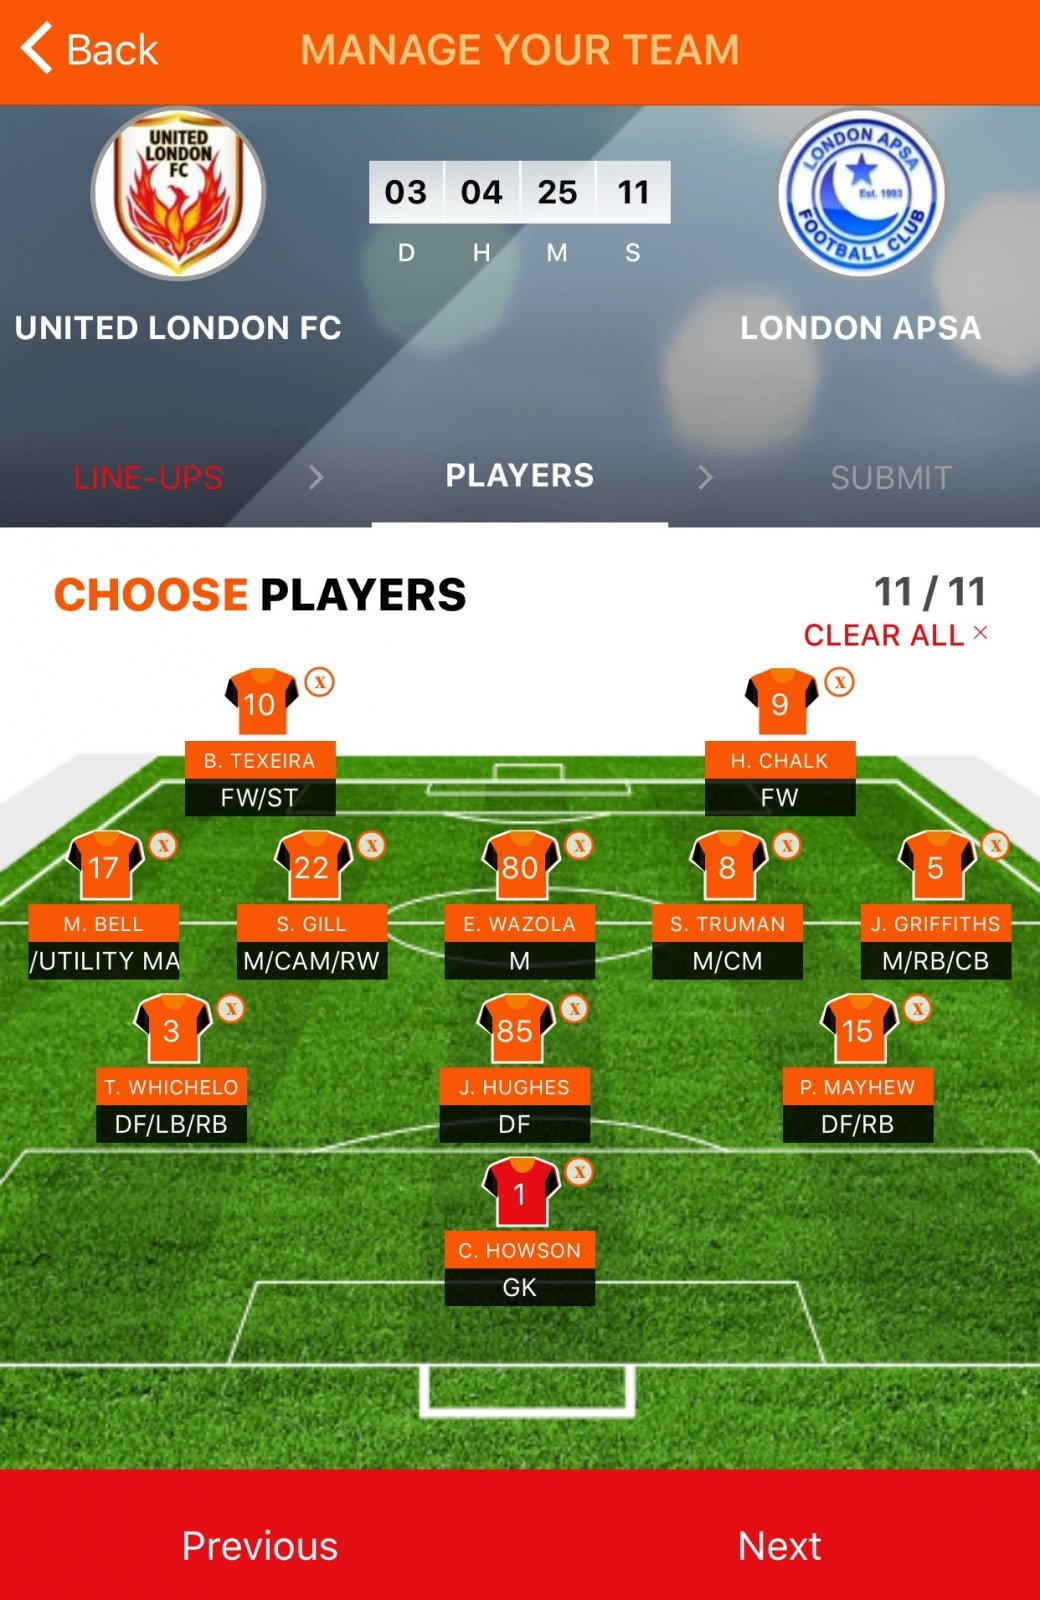 United London FC: The real football club that wants you to